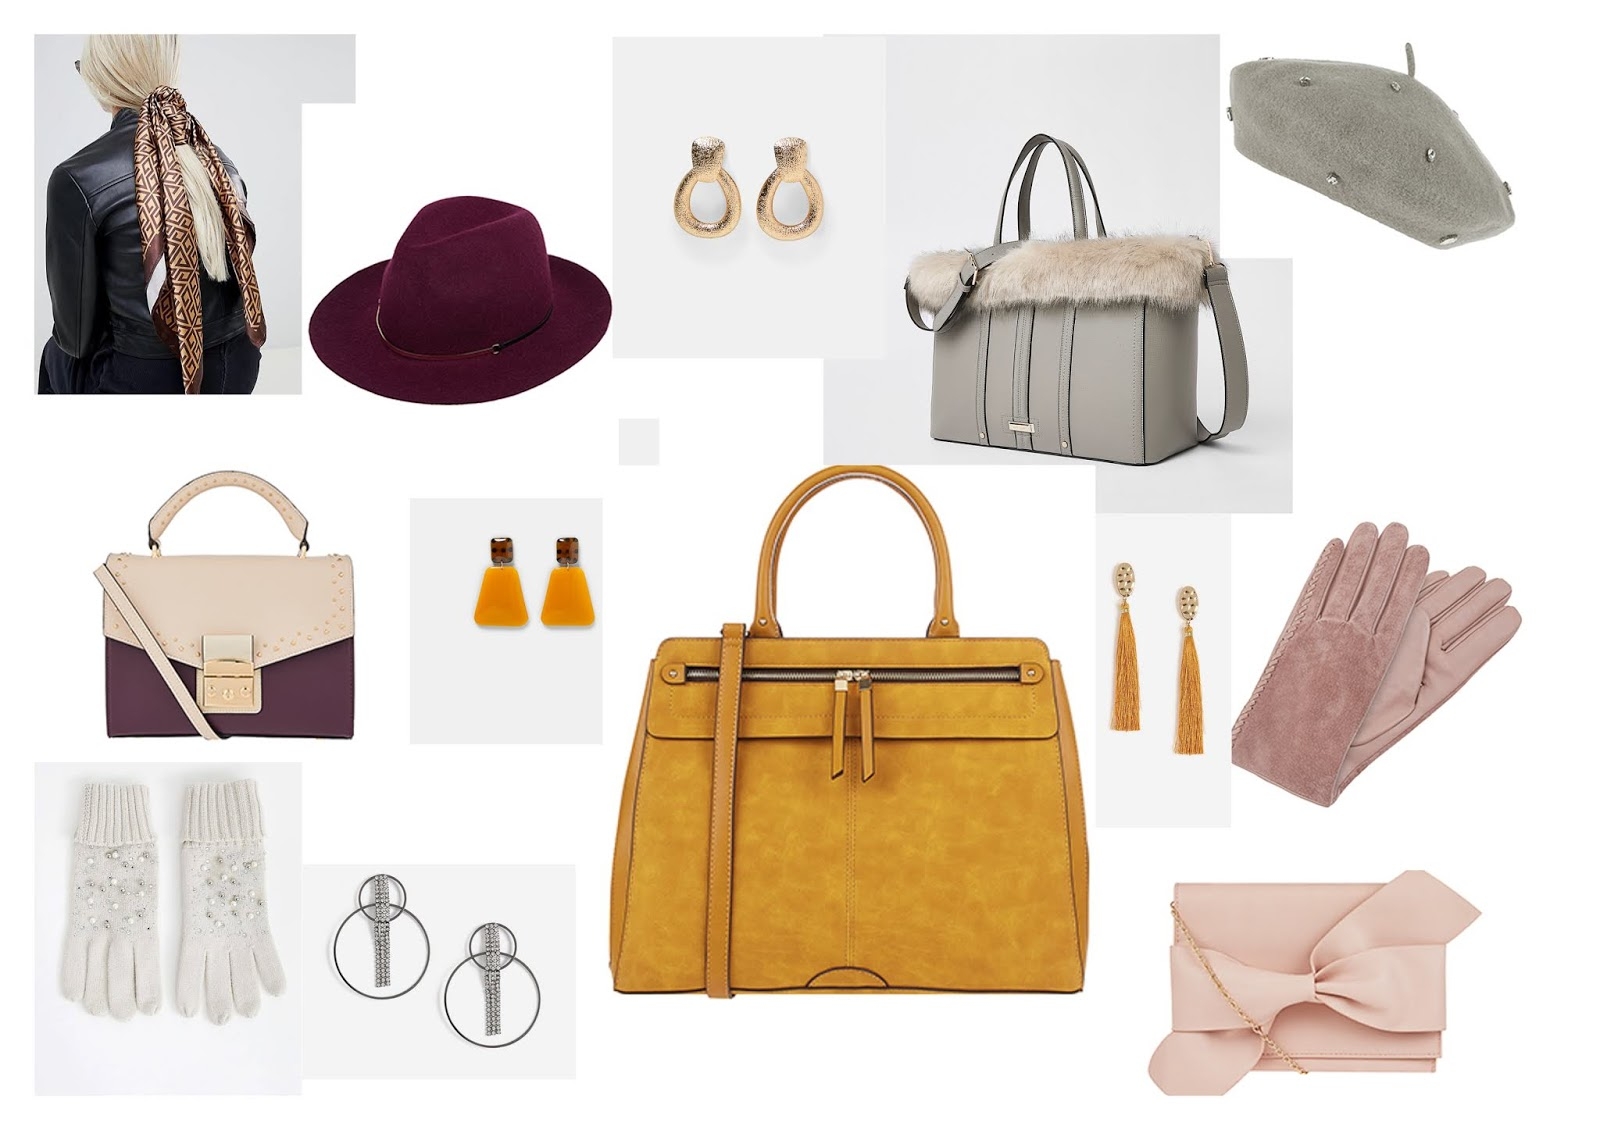 Christmas Gift Guide: Accessories, Hats, Gloves, Scarves, Jewellery, Handbags